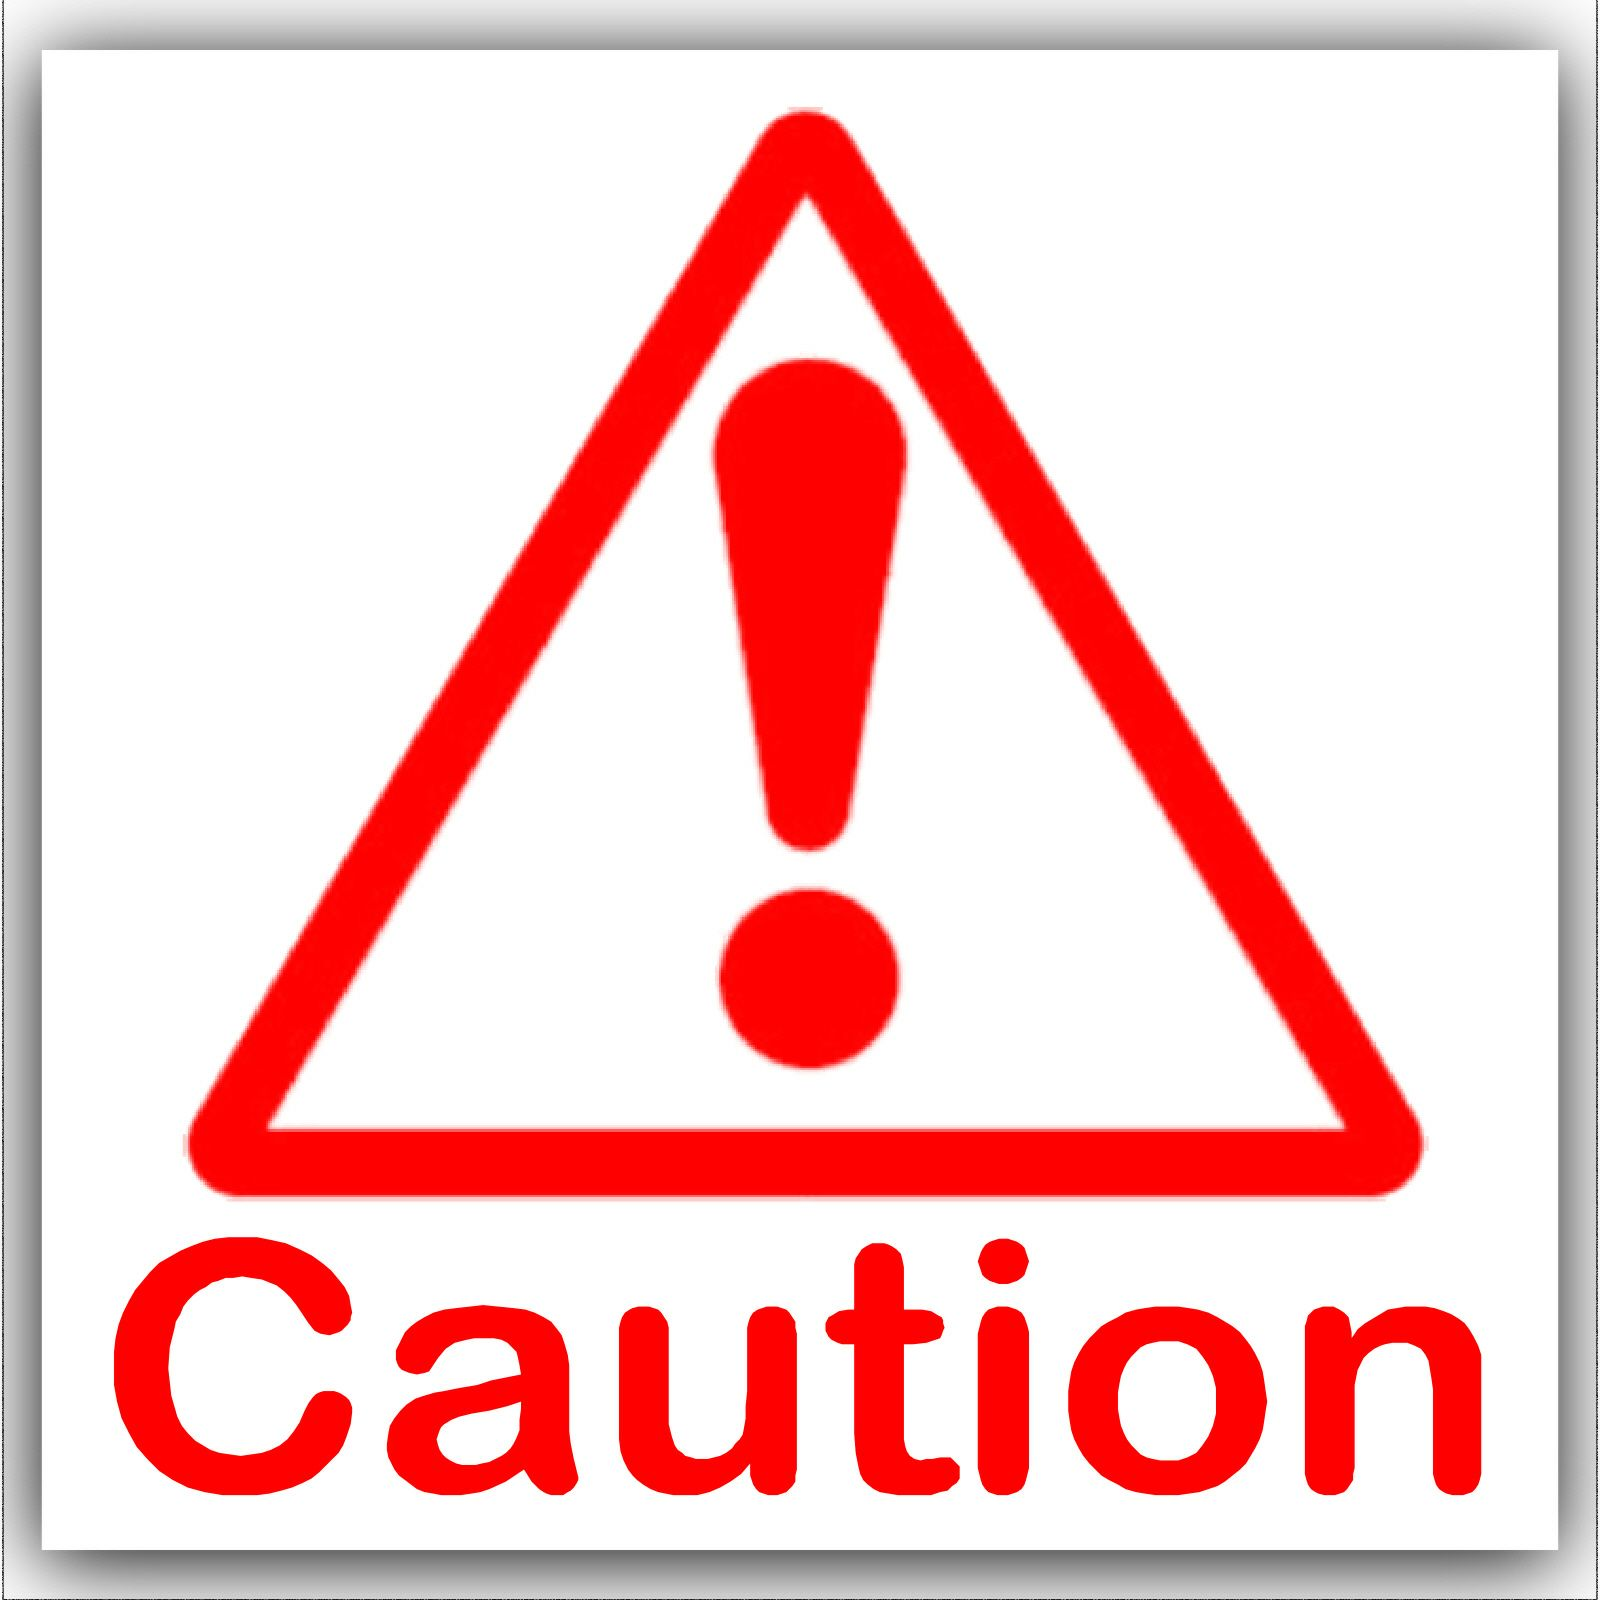 1 X Caution Symbol With Text Red On White External Self